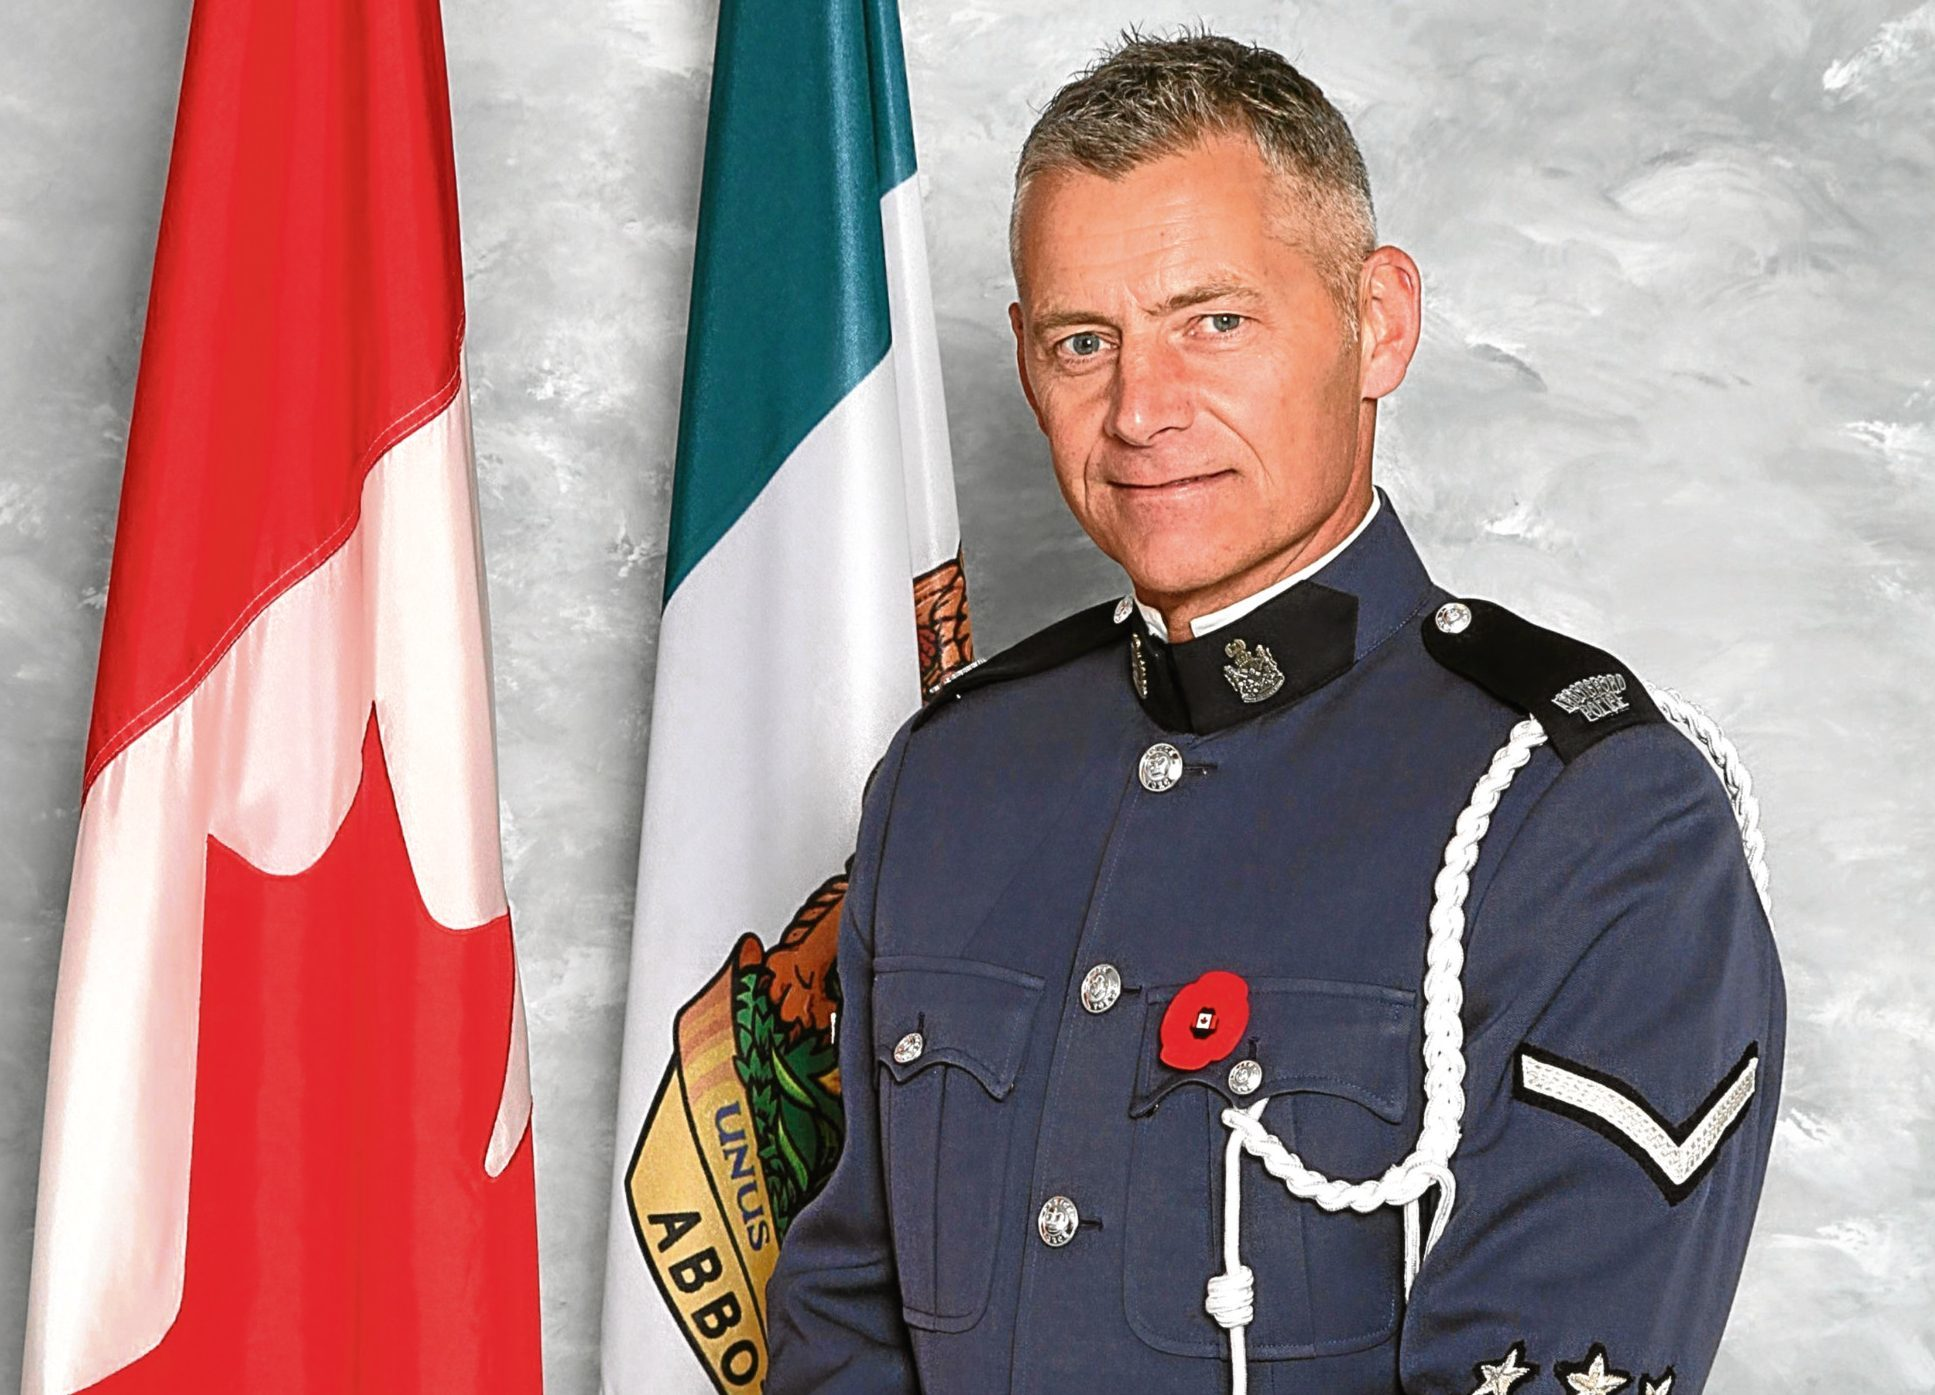 PC John Davidson, 53, a former British police officer who was shot dead while serving in Canada. (Abbotsford Police Department/PA Wire)